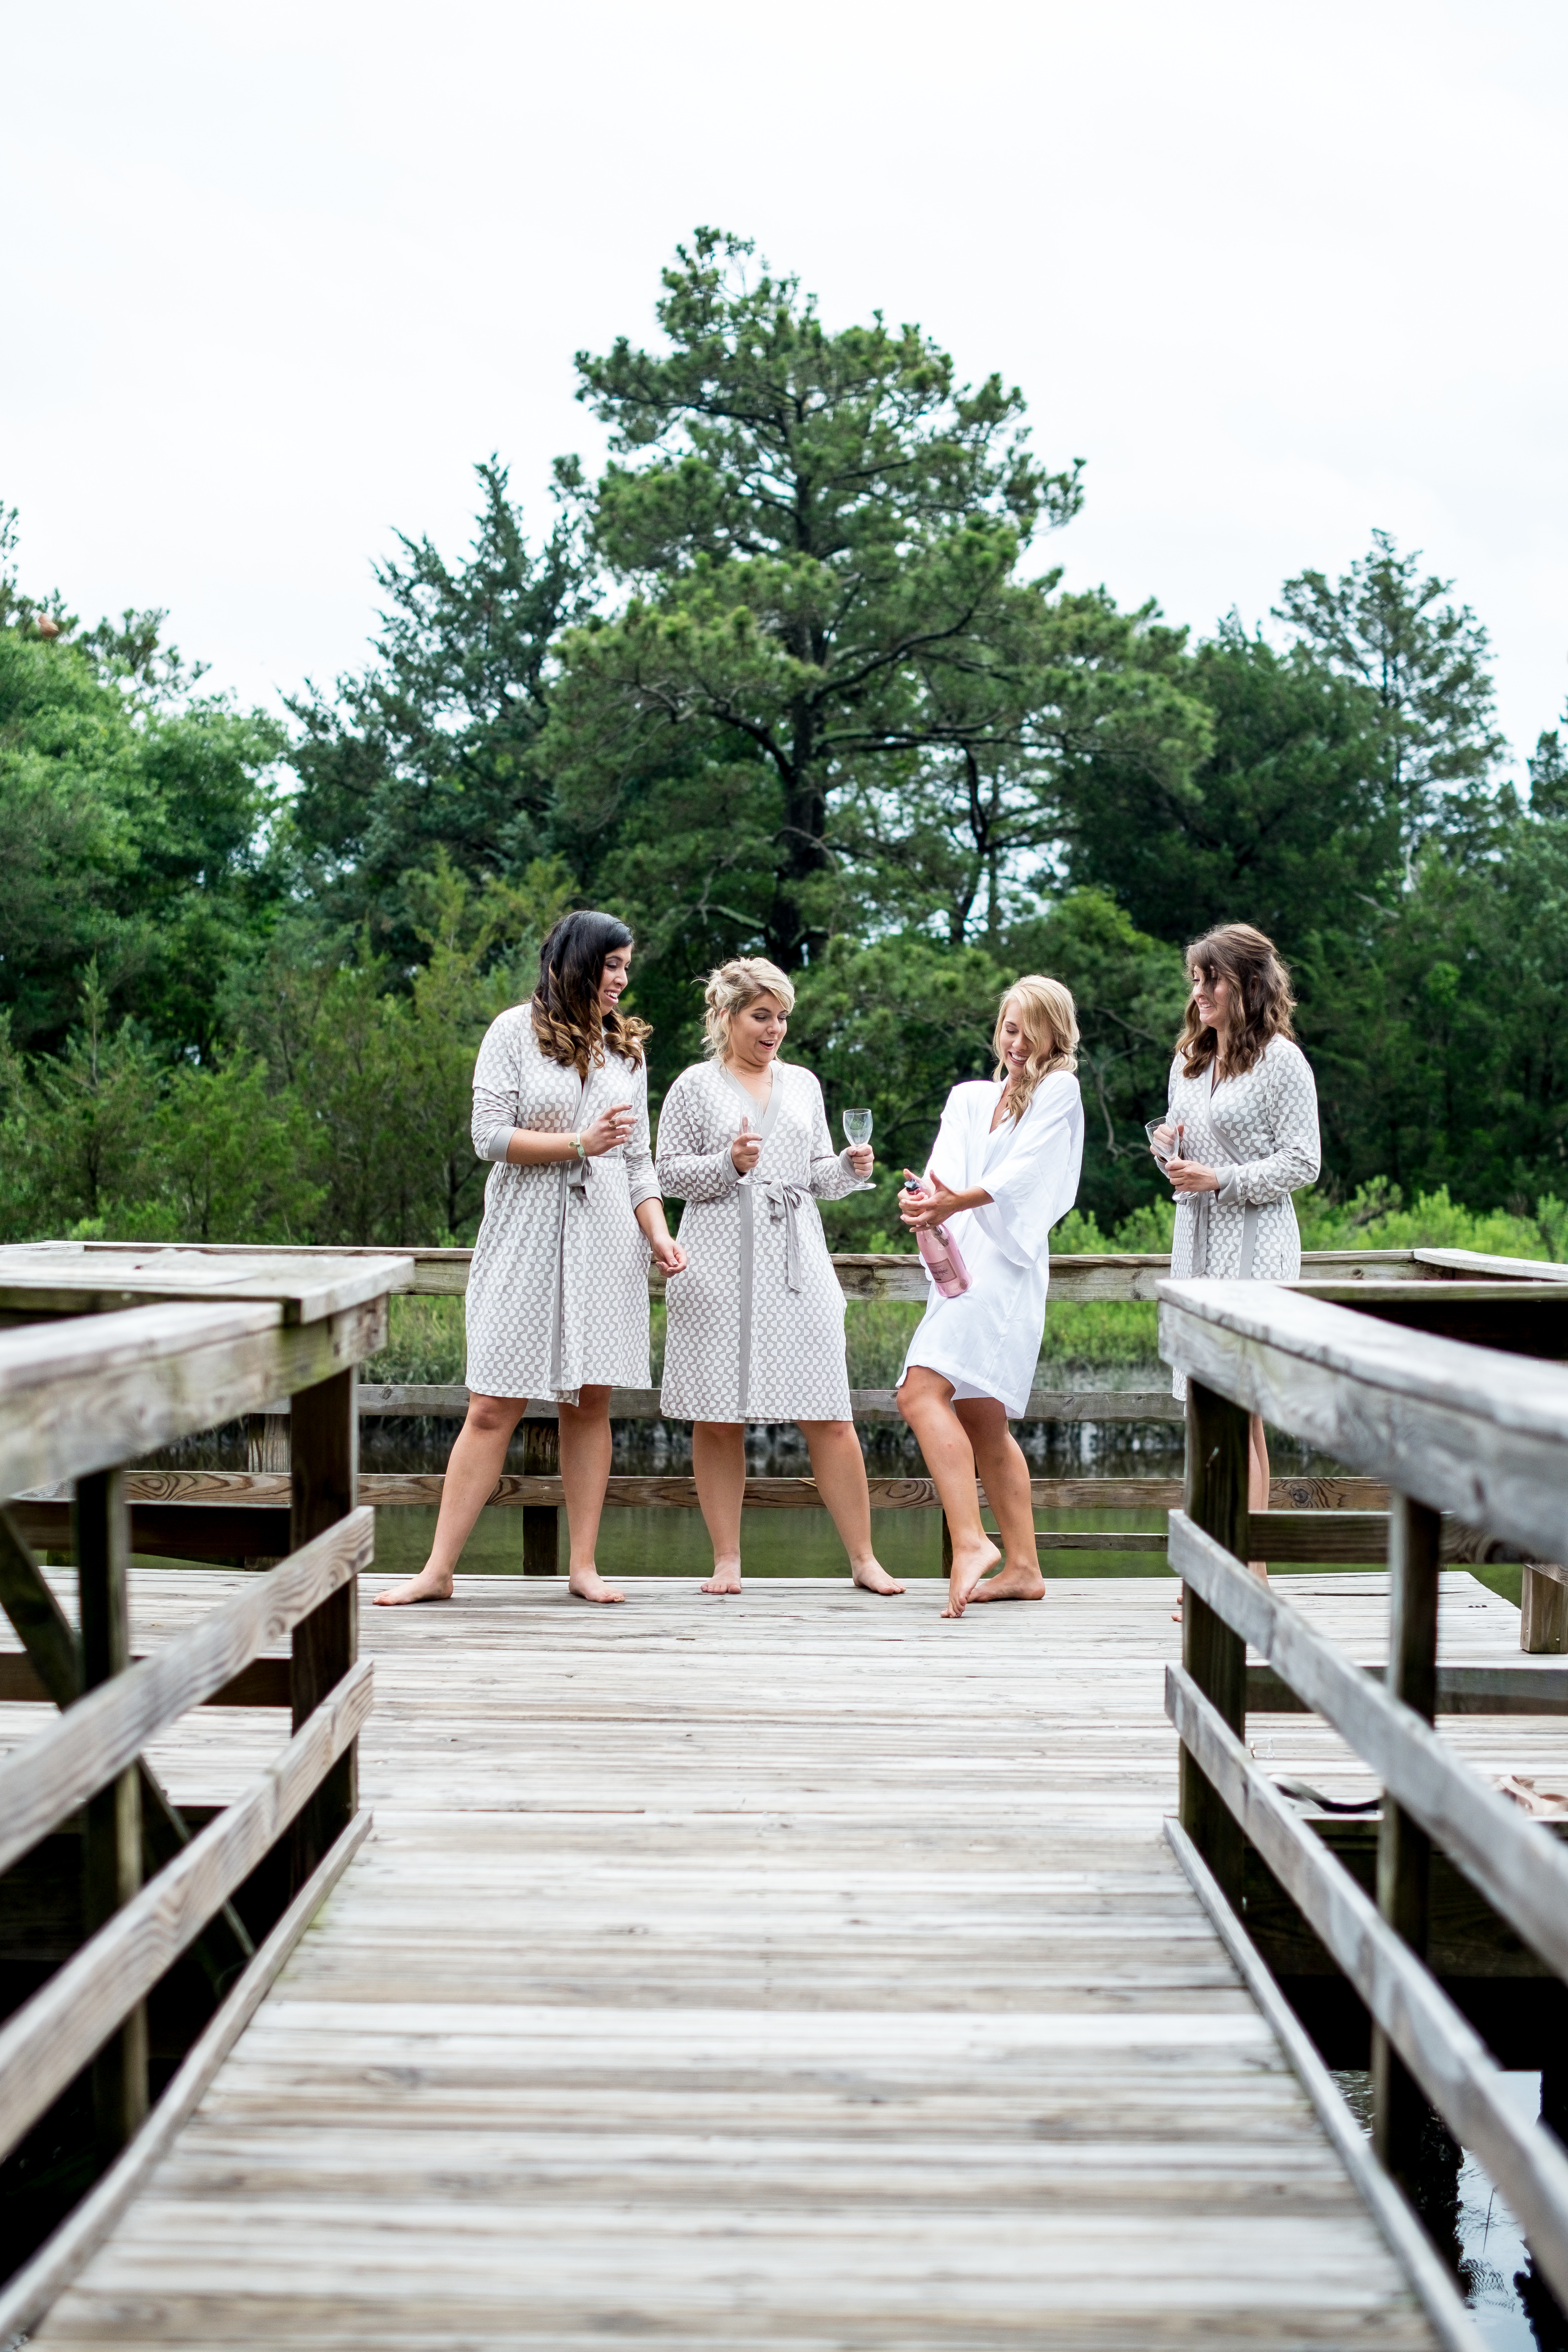 A bride and her bridesmaids stand at the end of a pier, on the intercoastal waterway, popping the cork on a bottle of champagne. Photo taken by Pait Photography, at a wedding at St. James Plantation, in St. James, NC.